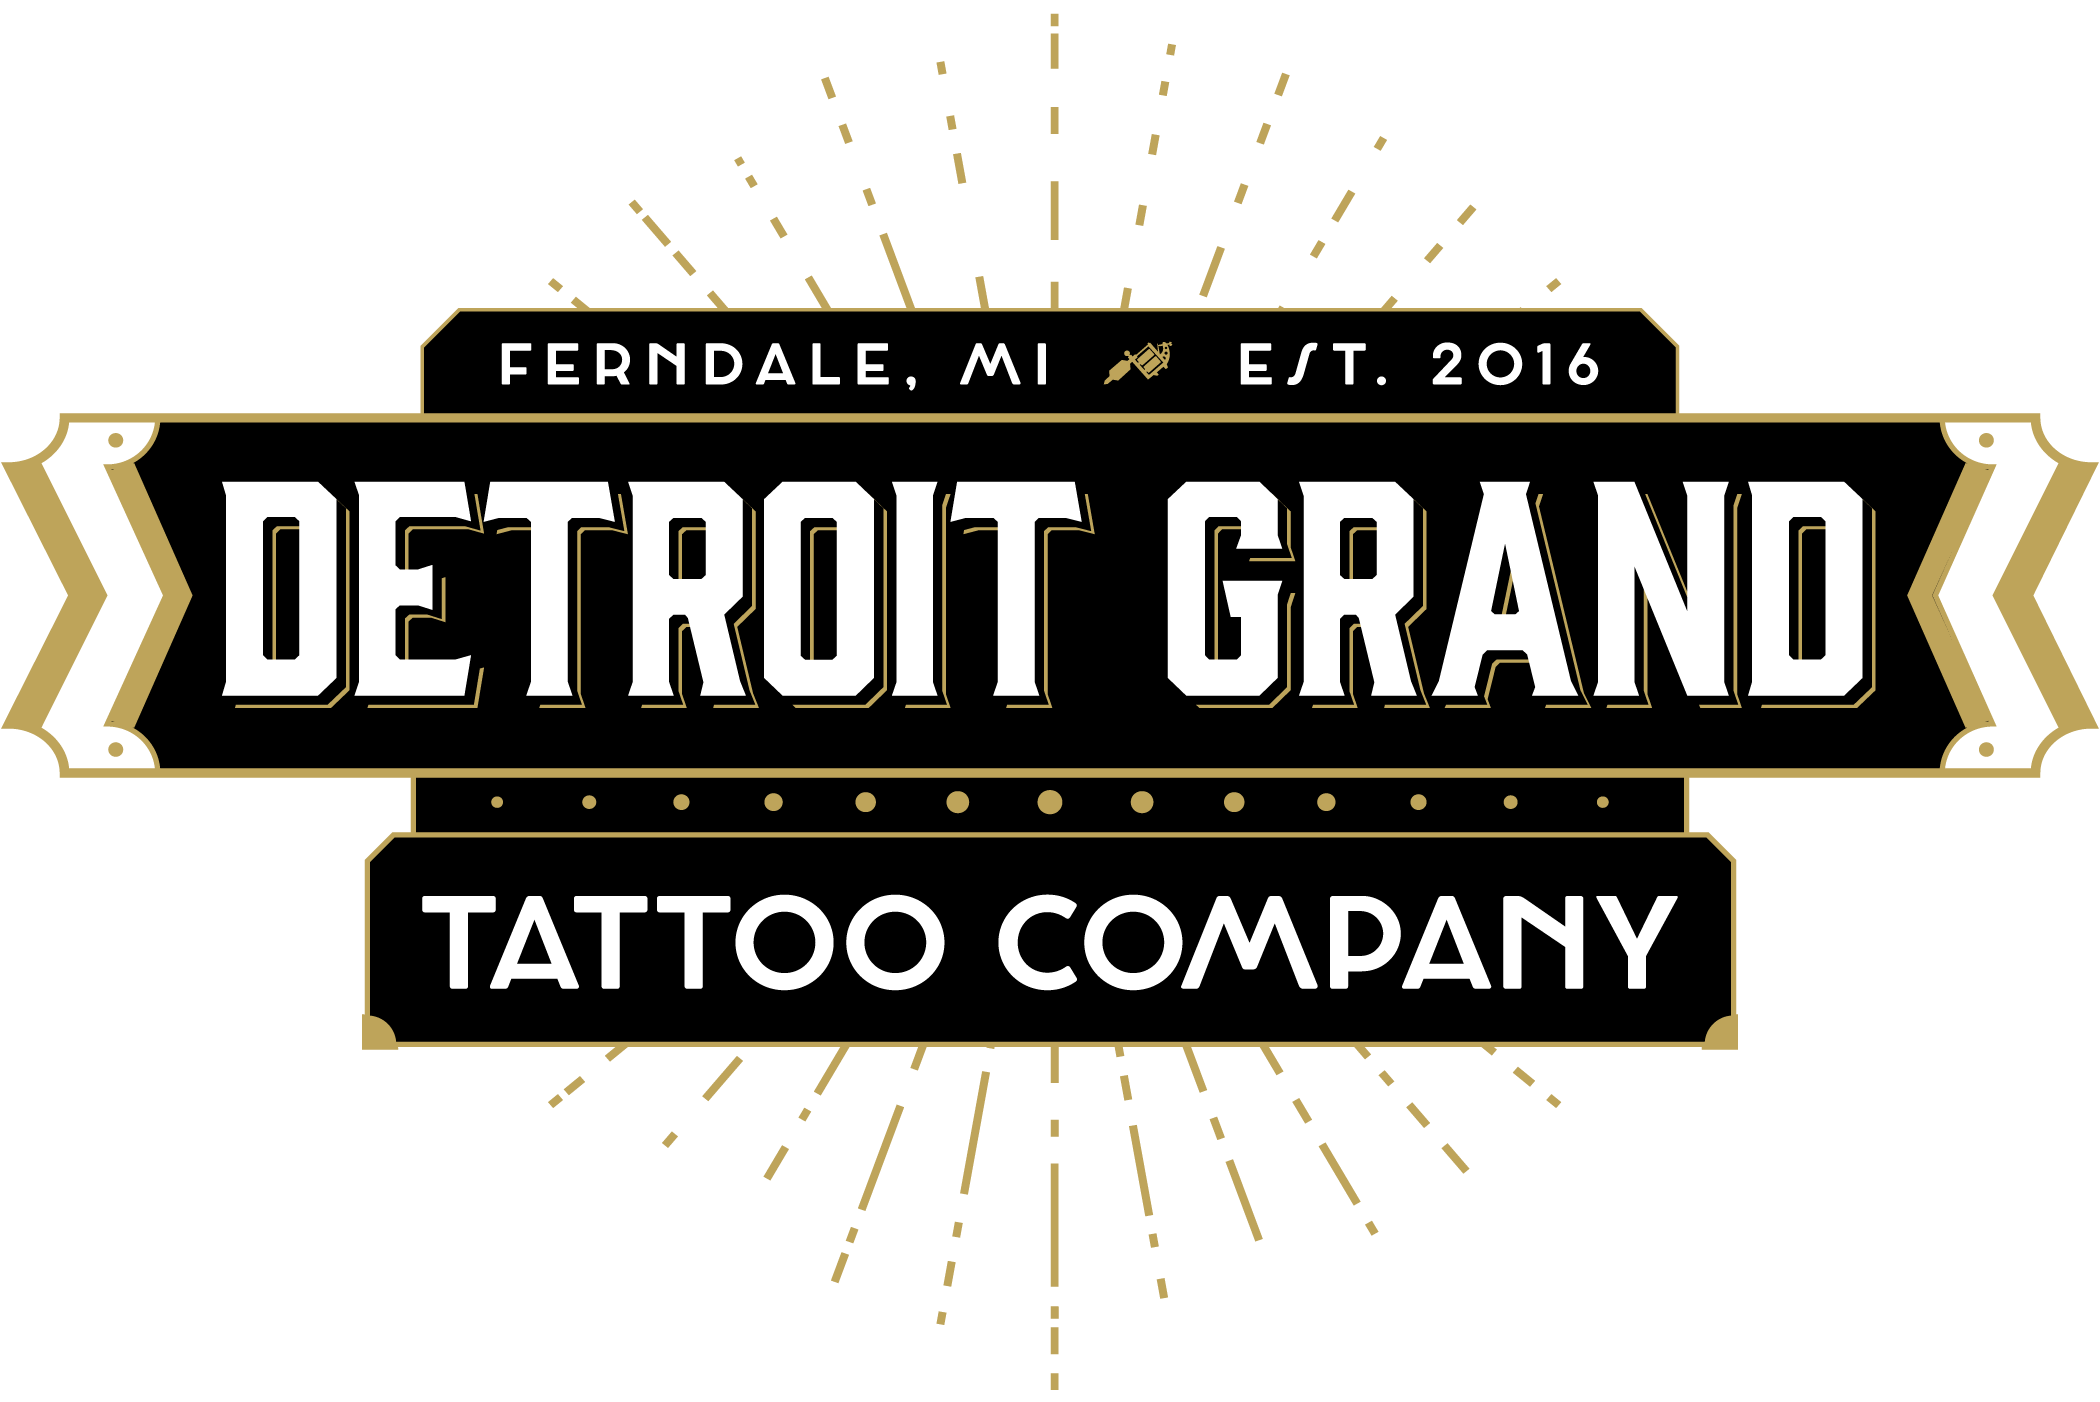 Detroit Grand Tattoo Company logo